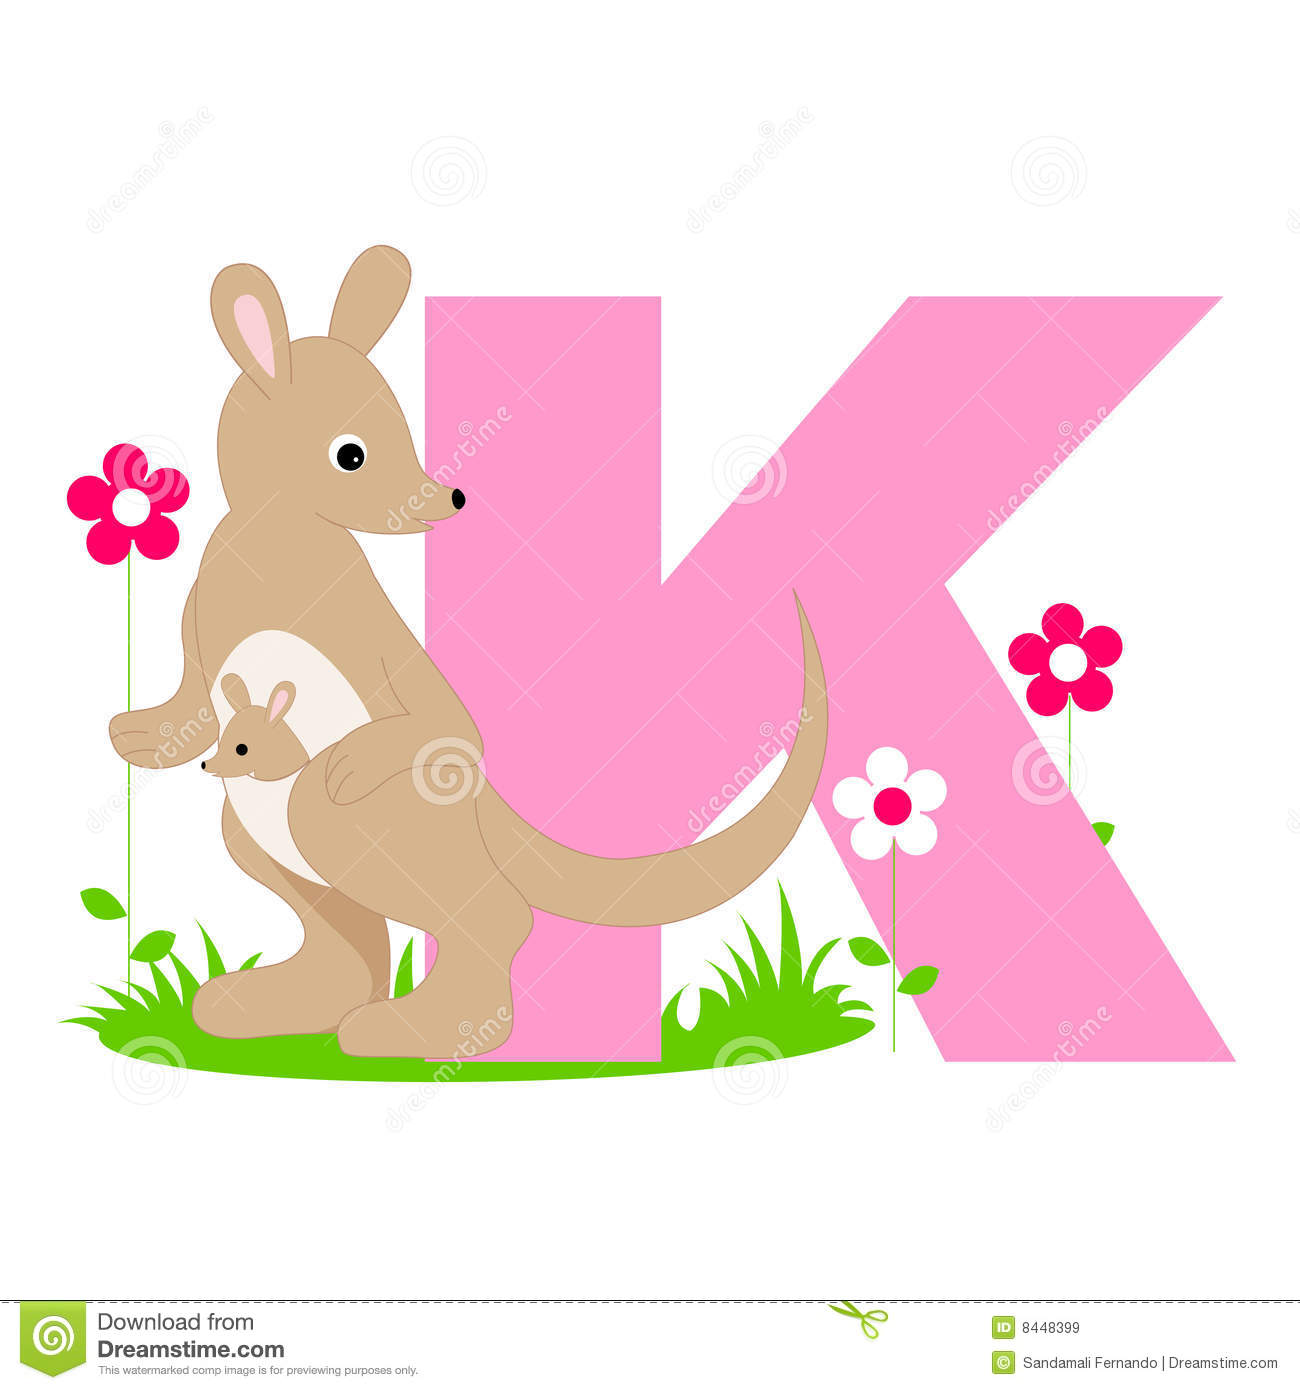 Free animal alphabet clipart freeuse stock Animal Alphabet K Royalty Free Stock Images - Image: 8448399 freeuse stock